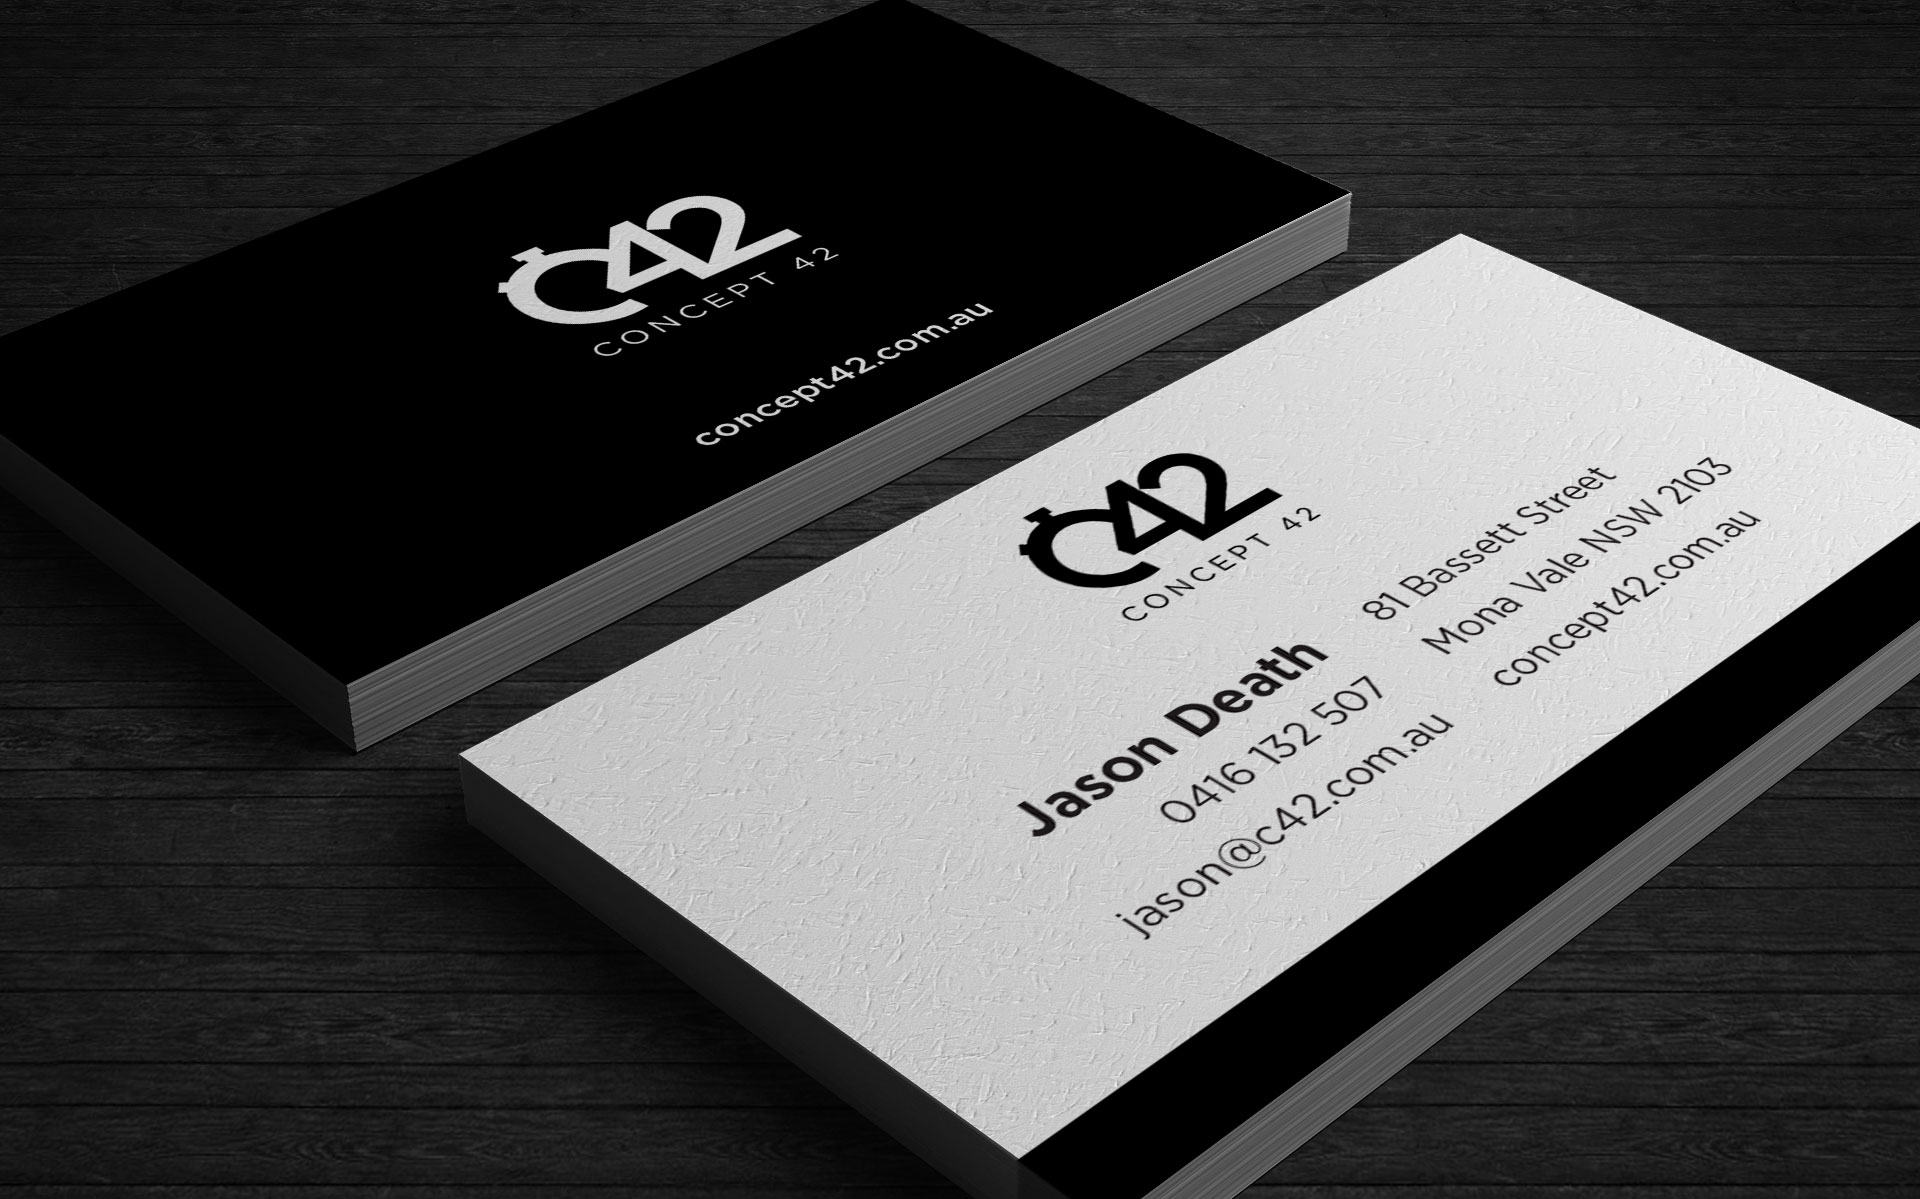 Concept 42 logo, branding & marketing designed by Amy at Yellow Sunday